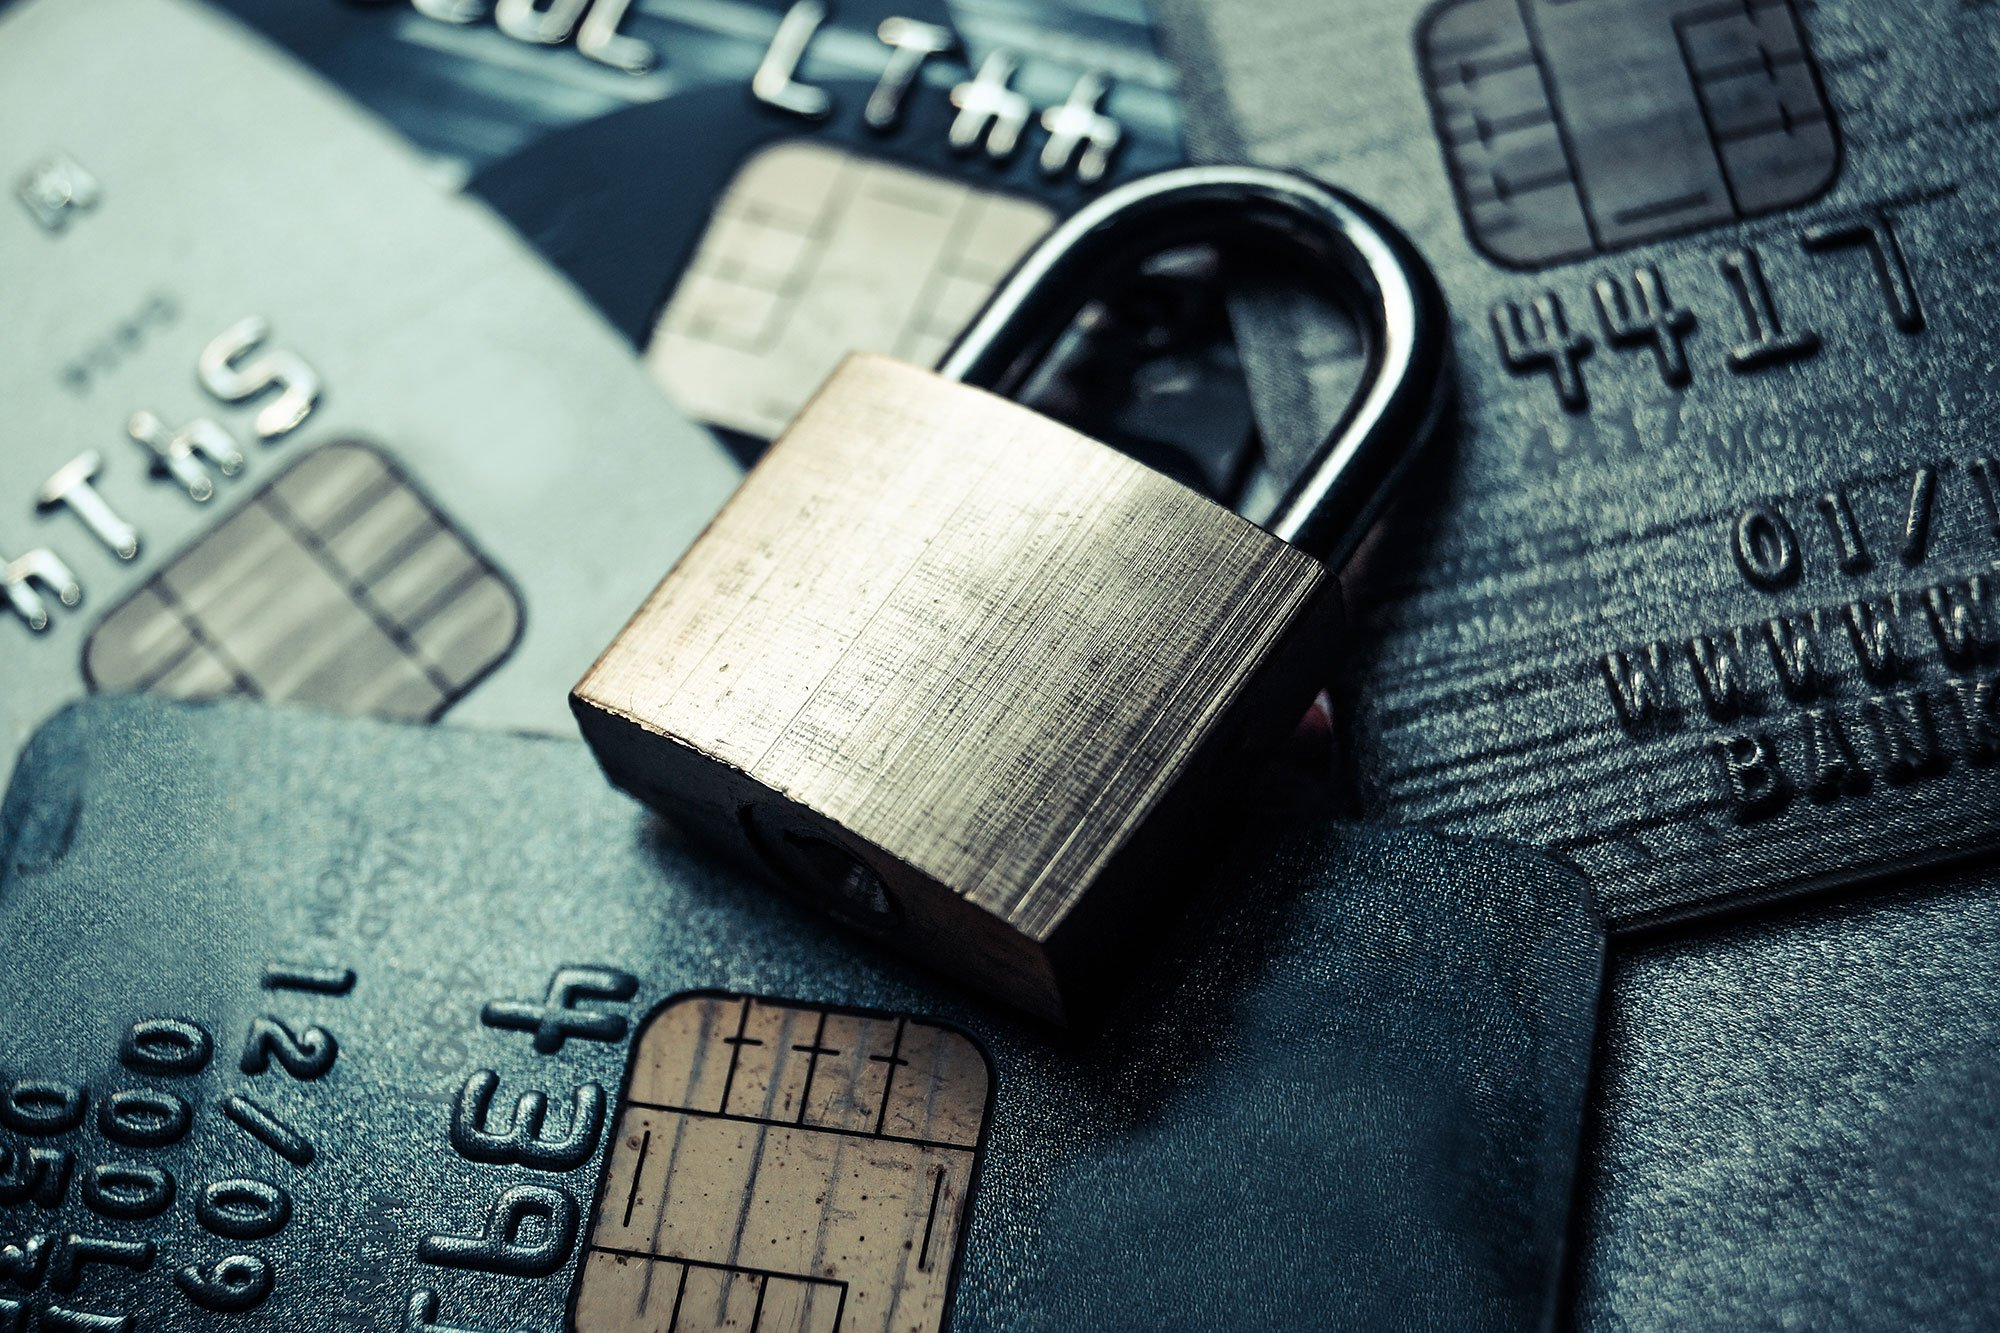 Padlock and credit cards